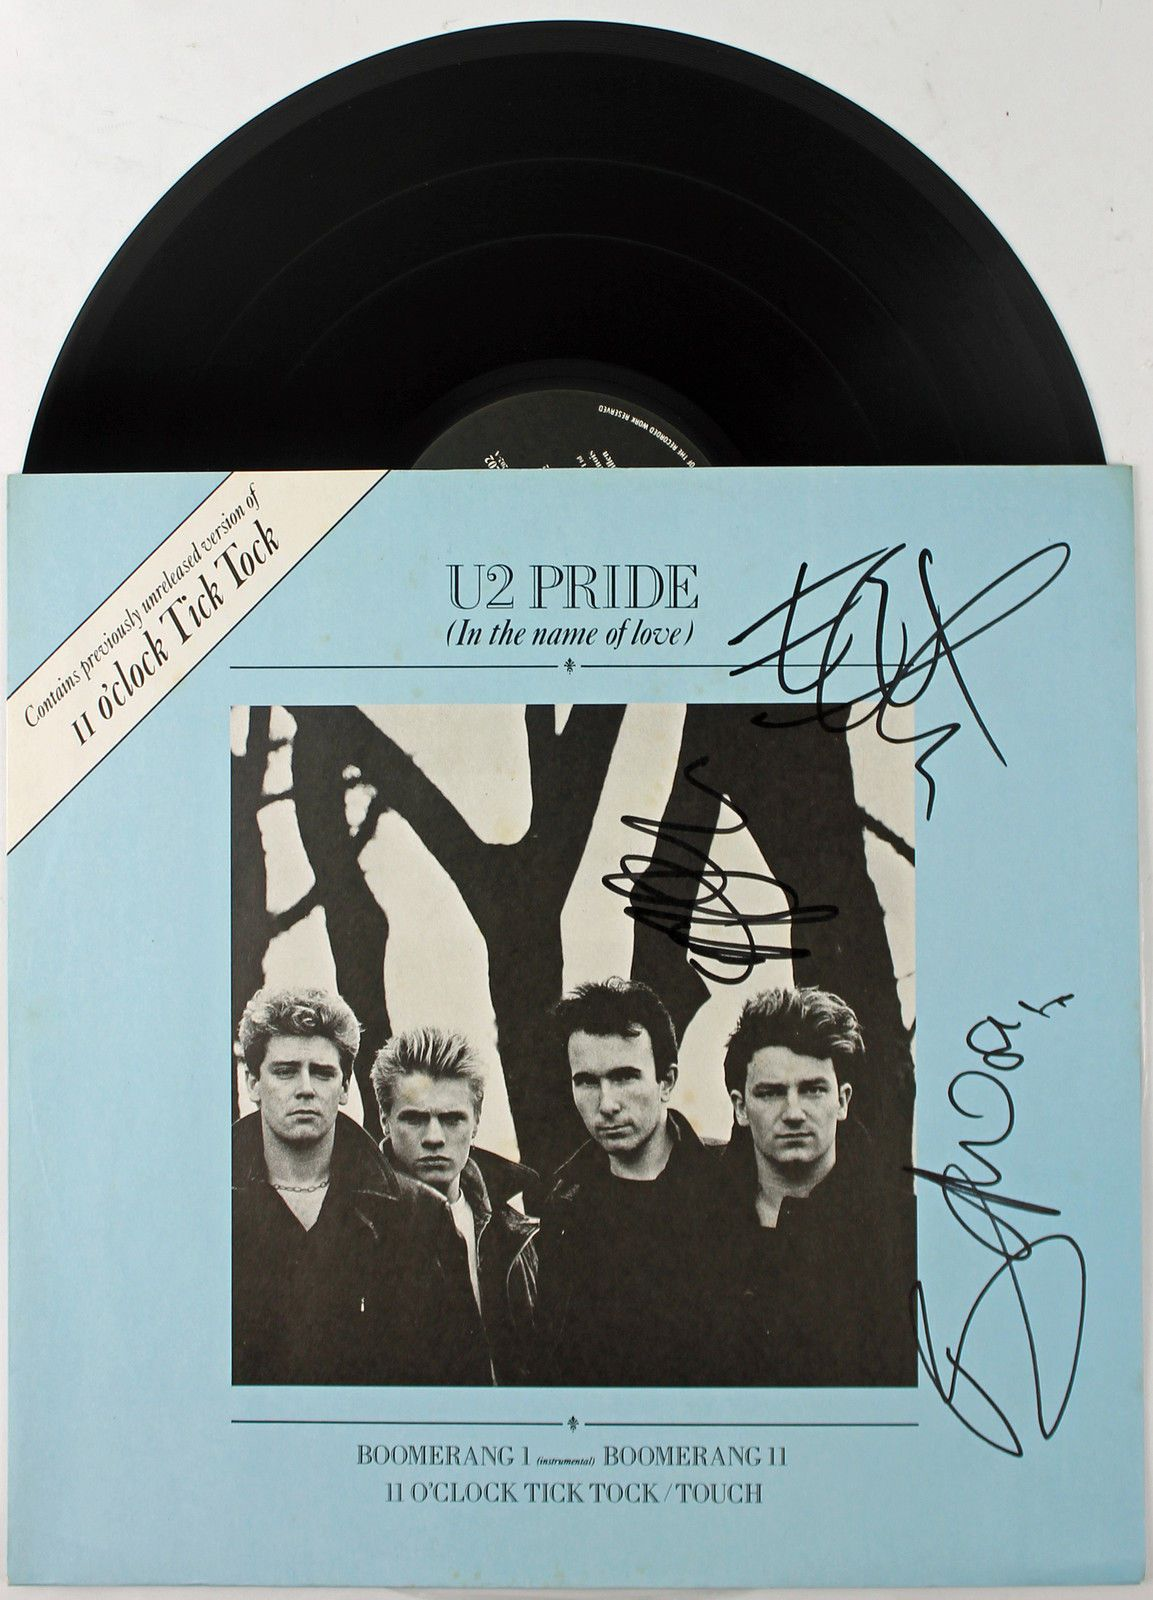 singles in pride There are only four tracks in this rare cd: 1 pride 2 boomerang (instrumental) 3 boomerang (vocal) 4 4th of july although it was produced in 1984 (30 years ago today), it is still fun and enjoyable to listen to.